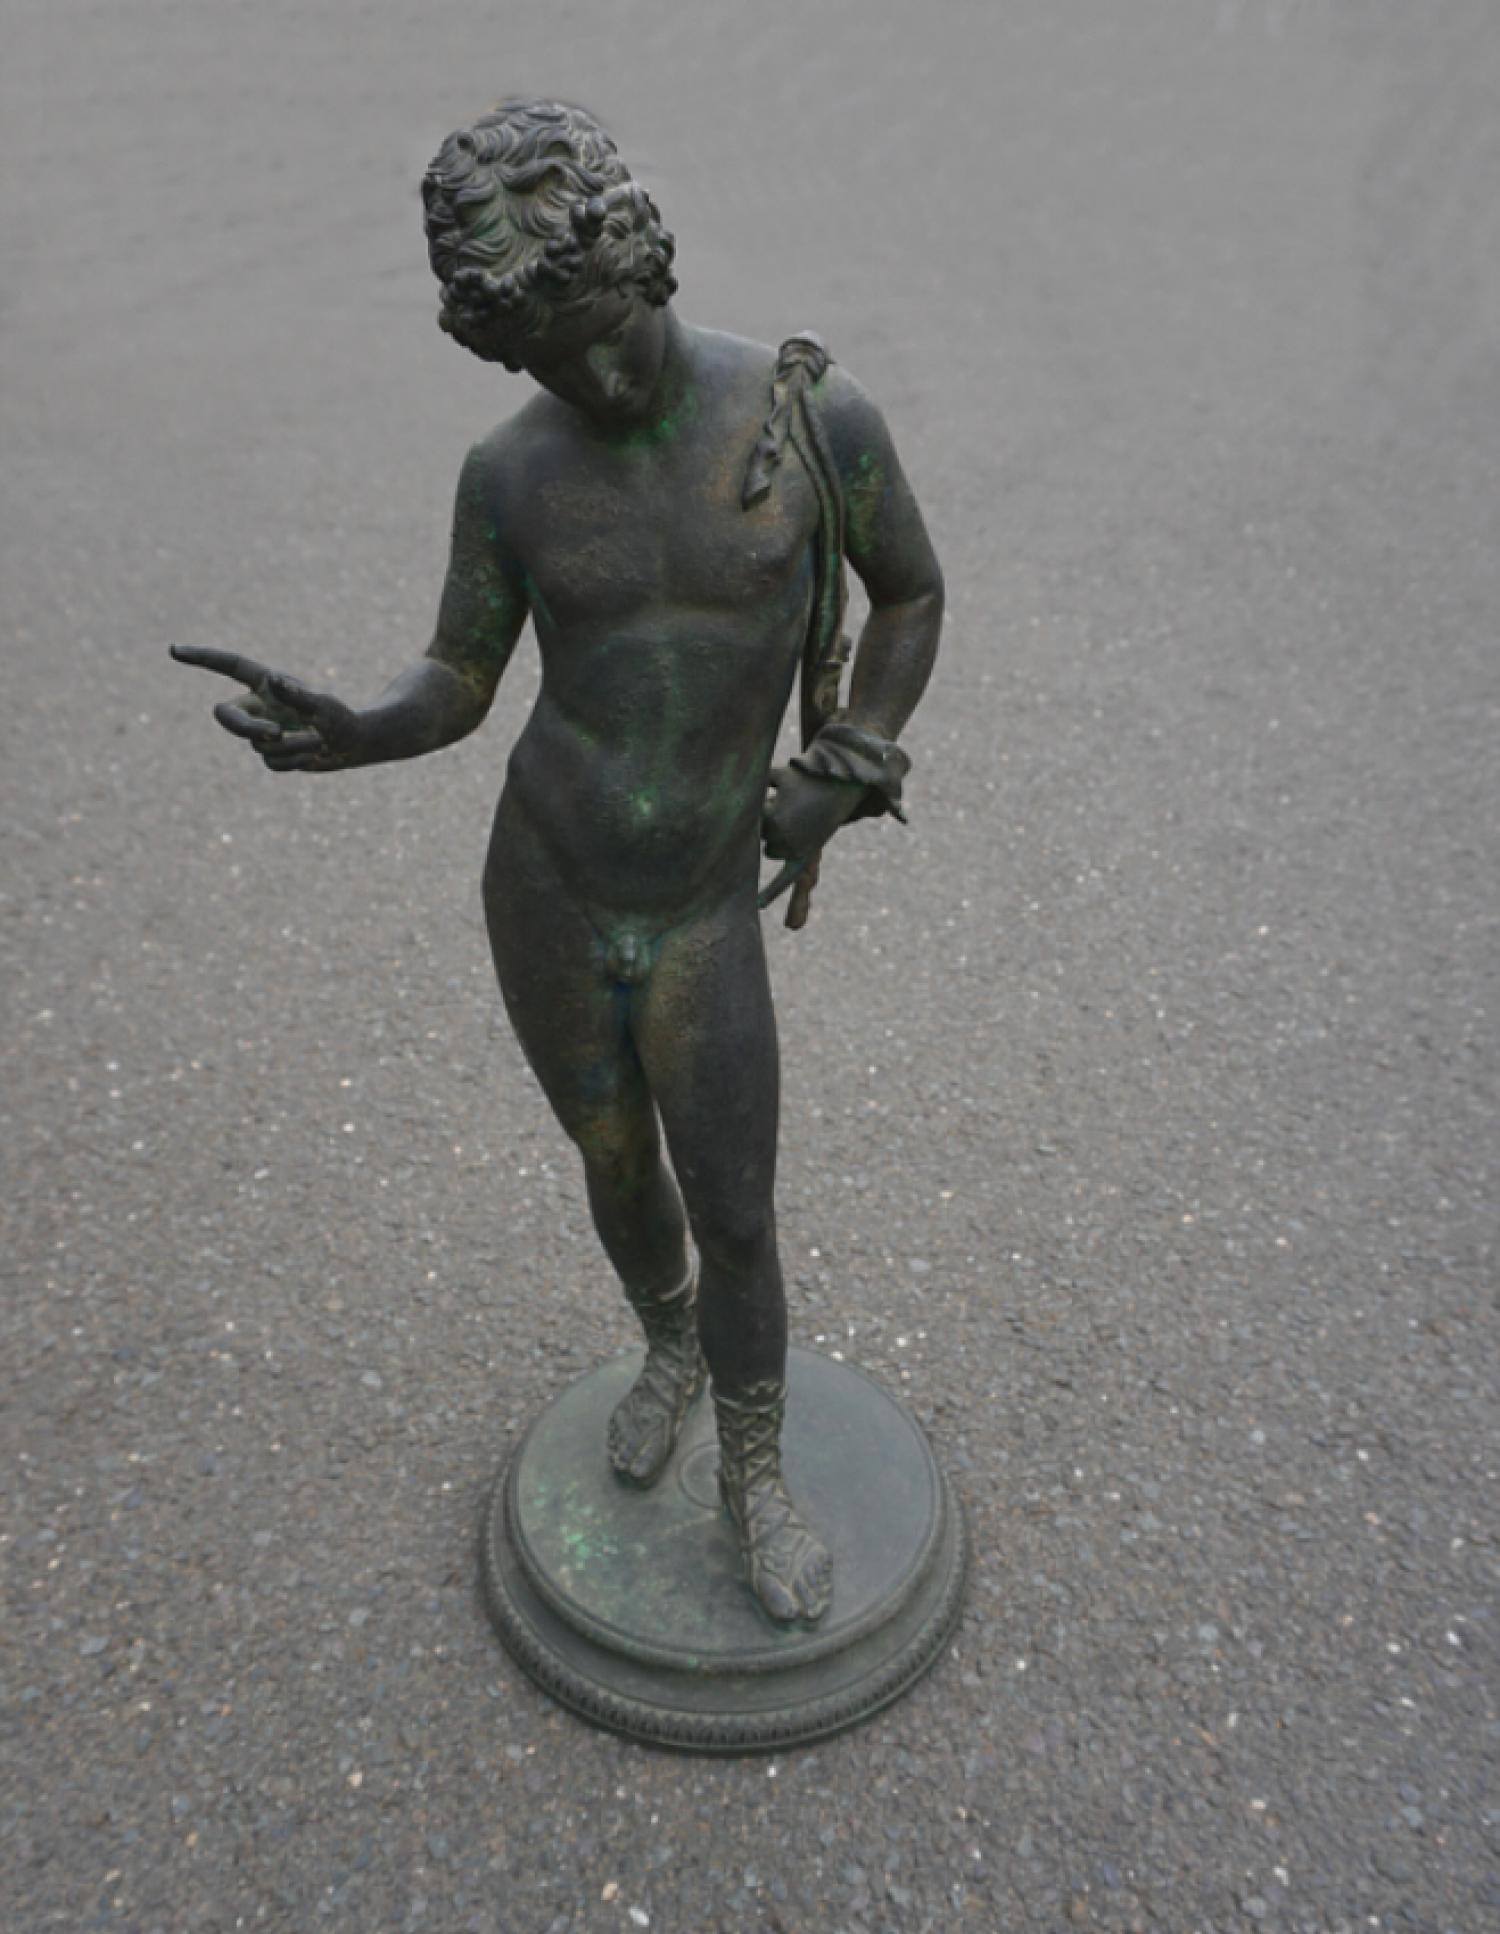 Antique G E Sommer bronze figure of Antinous c1880